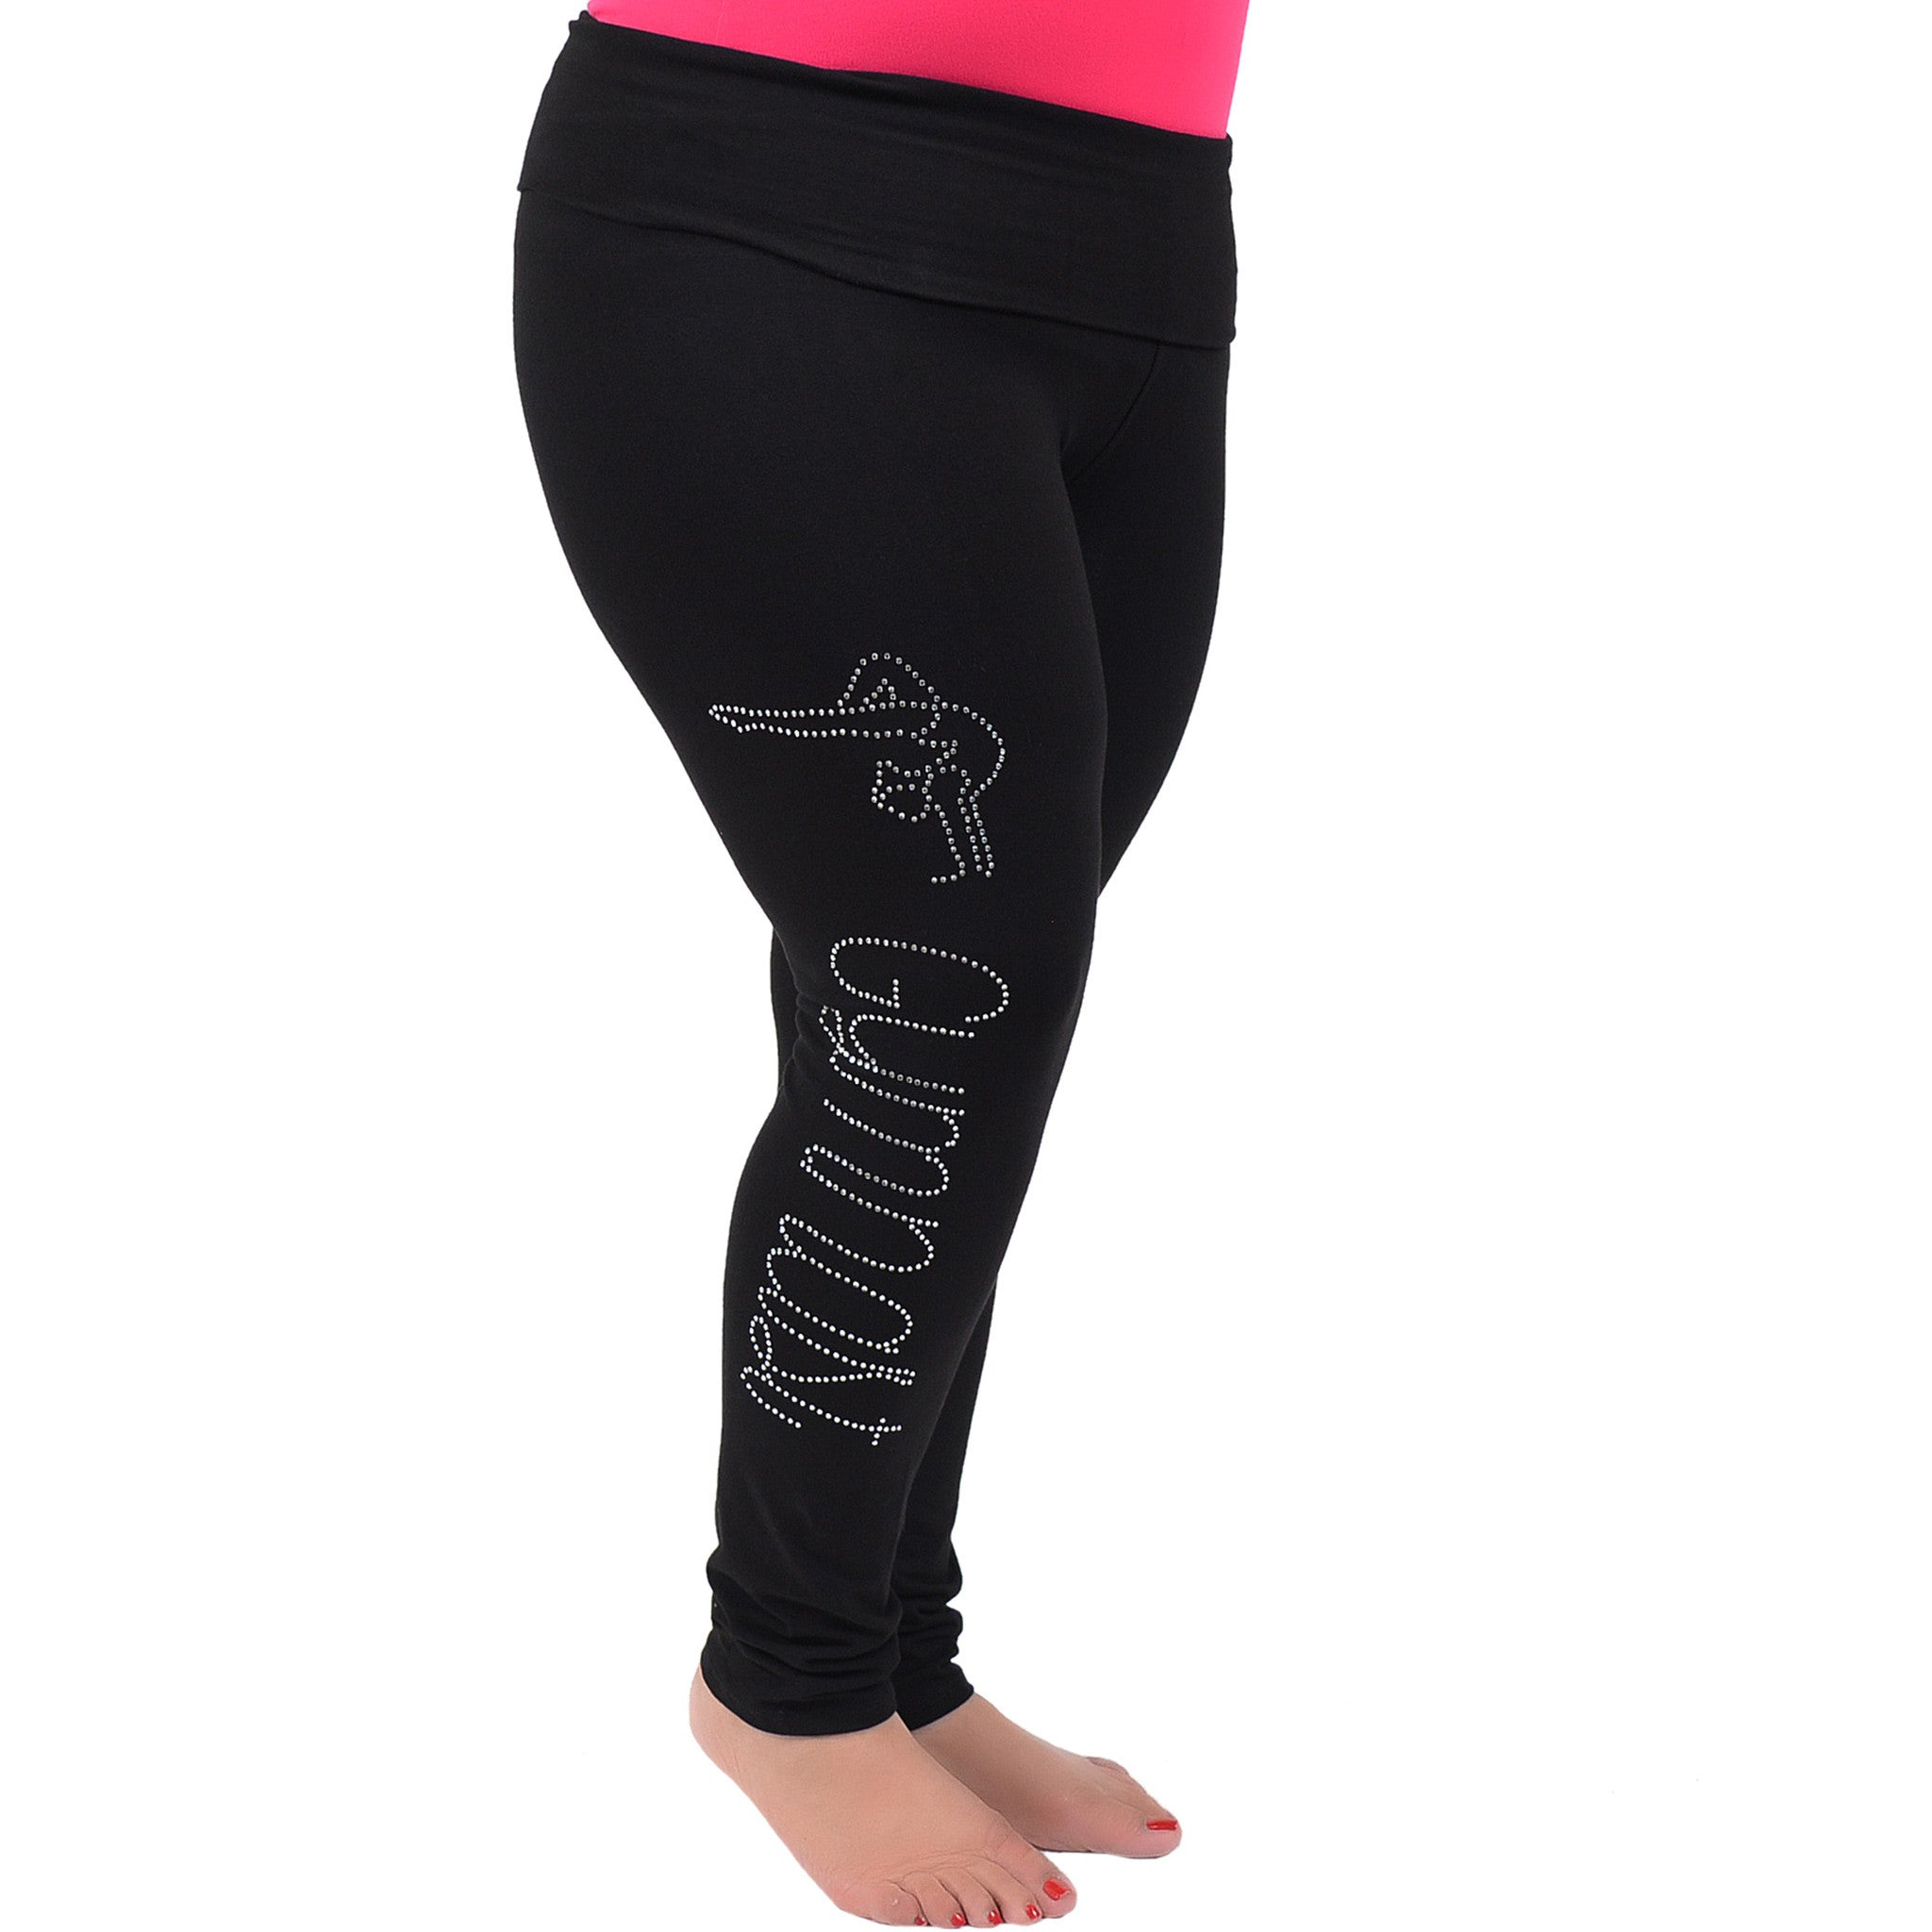 Teamwear Gymnast Rhinestone Foldover Cotton Leggings